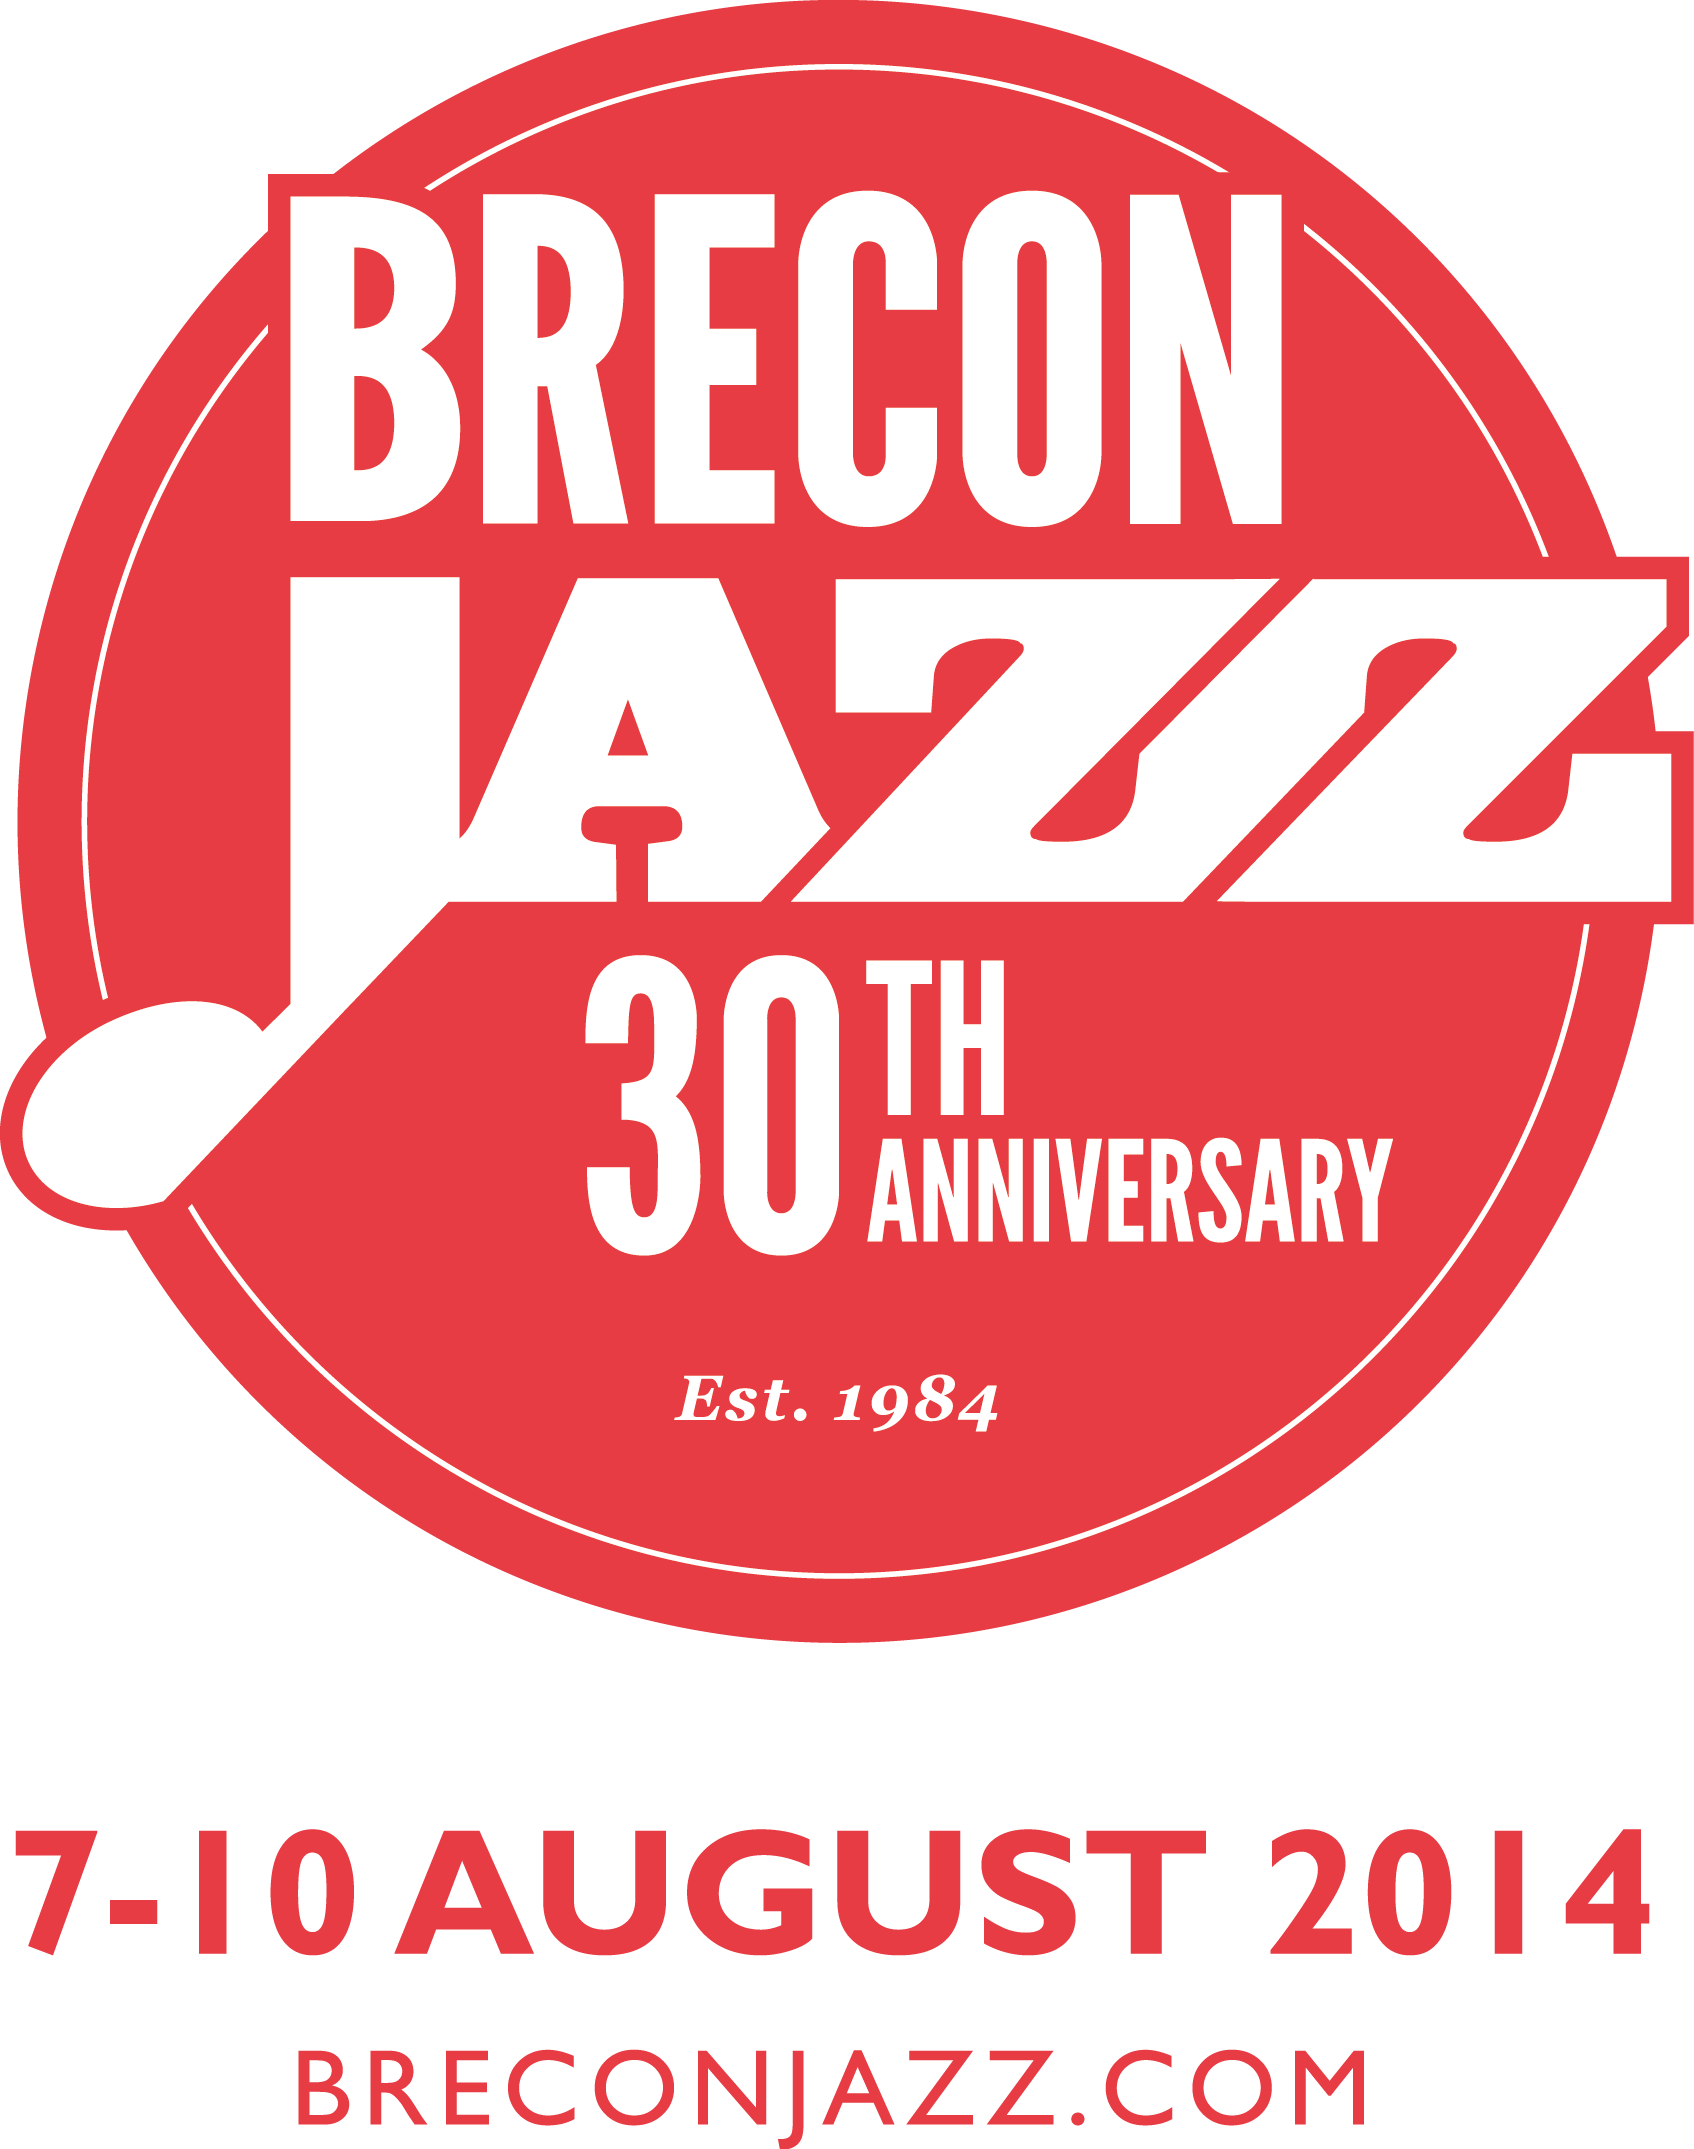 Brecon Jazz 2014 Merchandise